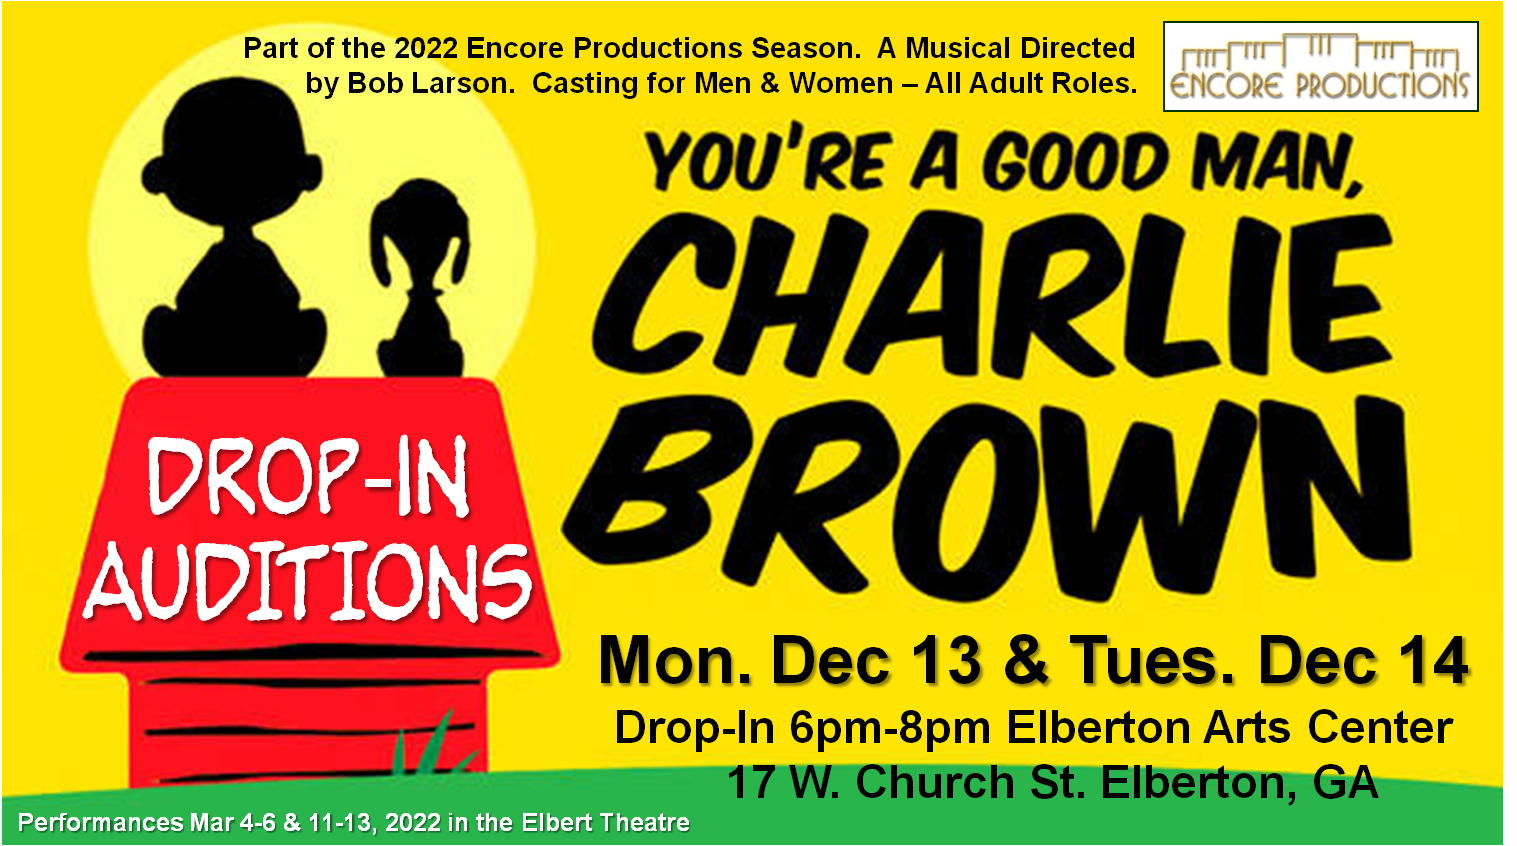 Charlie Brown Auditions